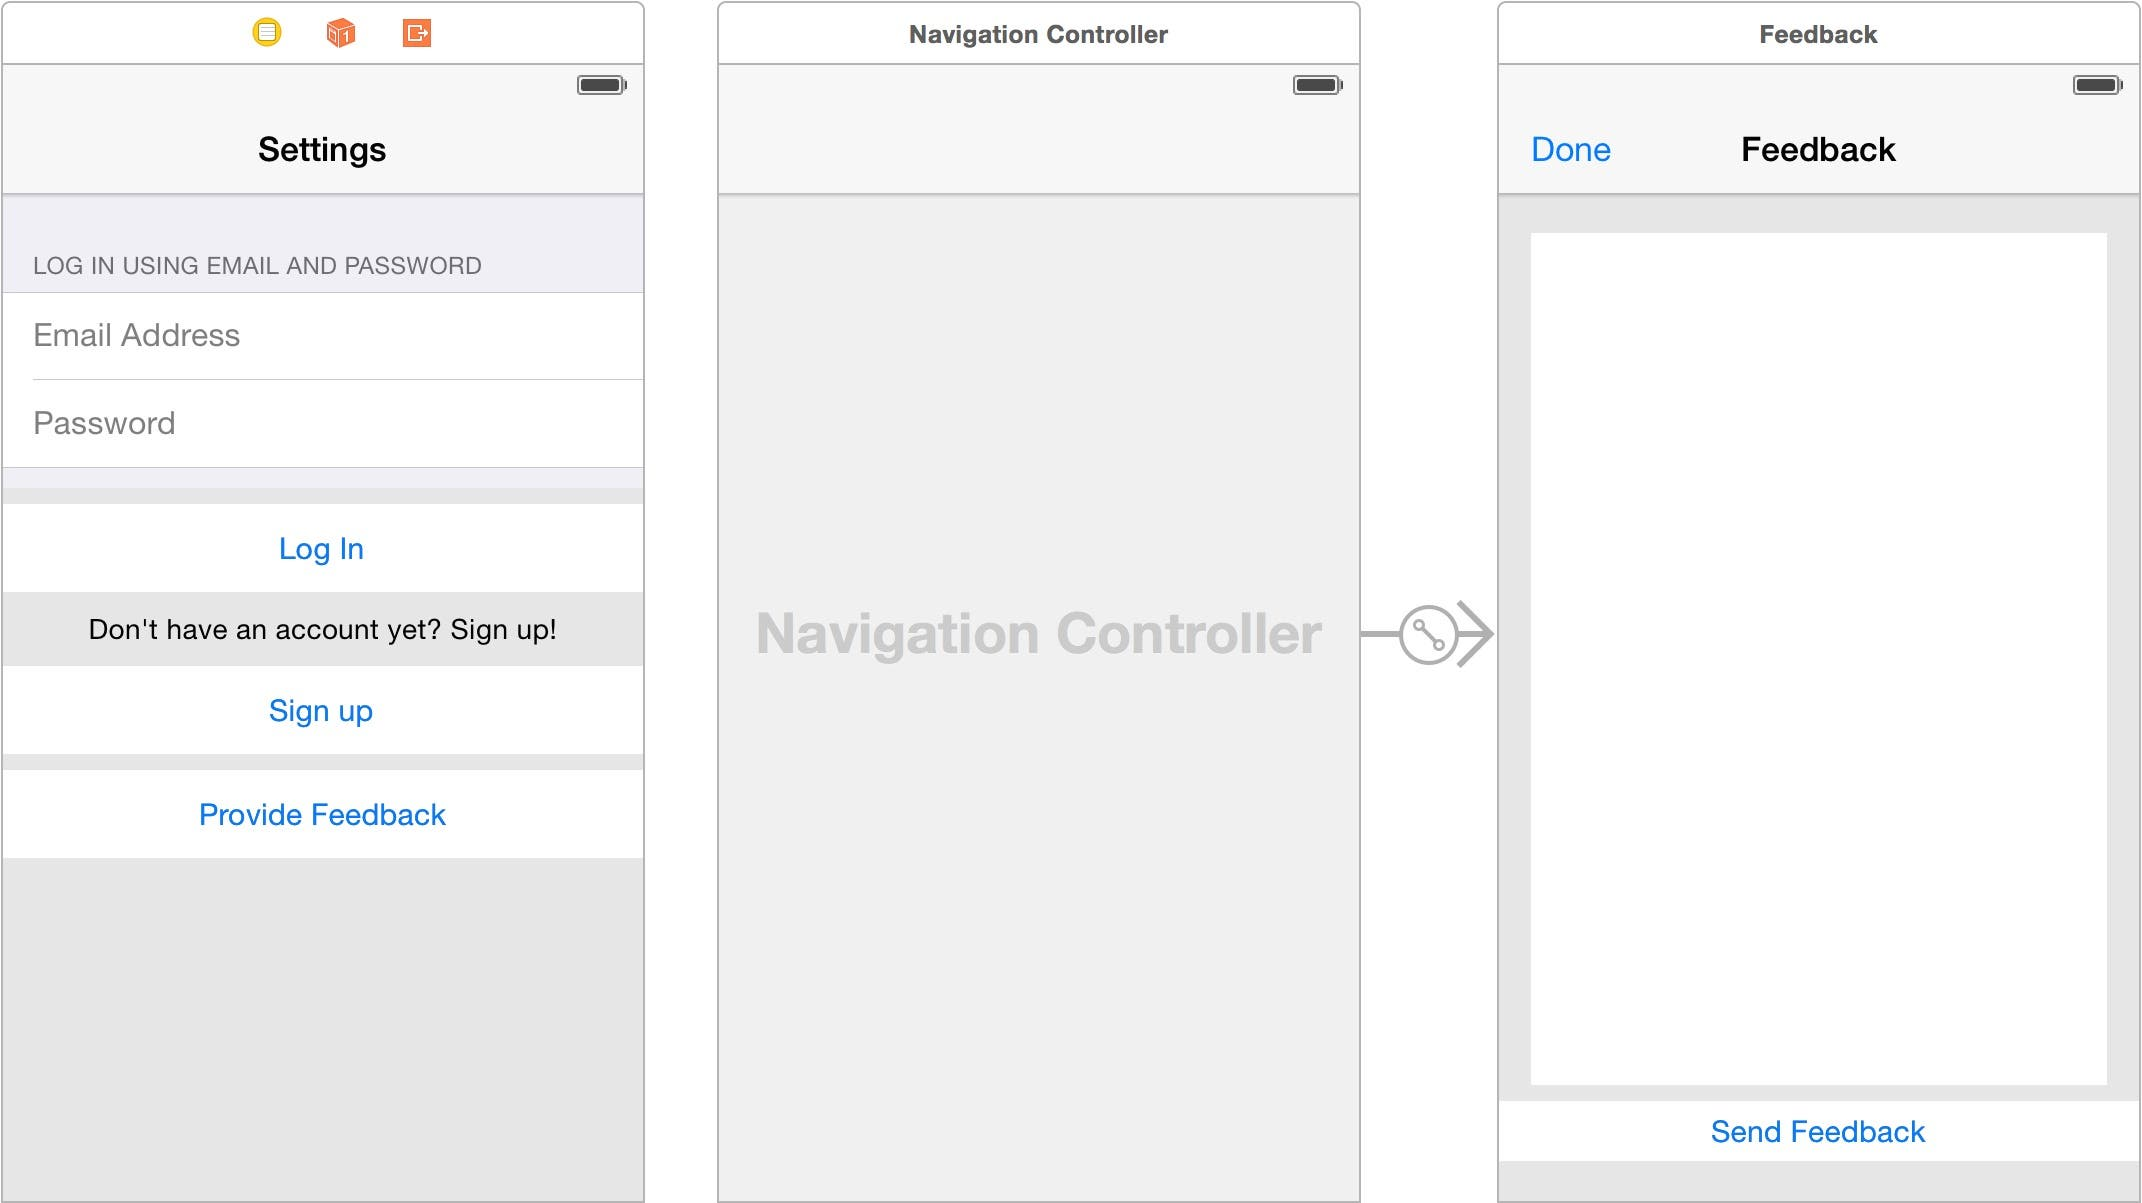 Embed Feedback scene in a navigation controller